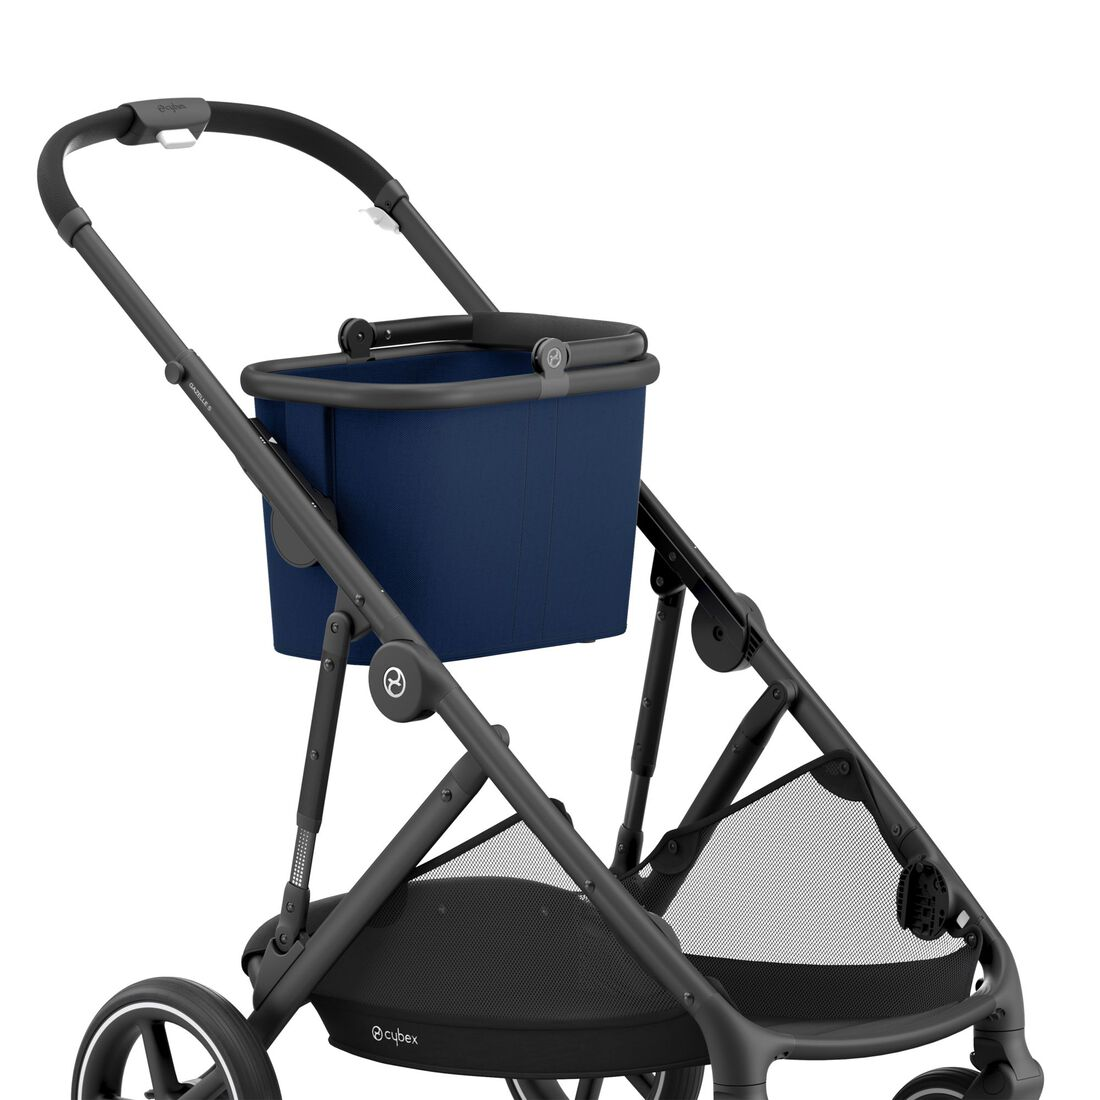 CYBEX Gazelle S - Navy Blue (Schwarzer Rahmen) in Navy Blue (Black Frame) large Bild 7